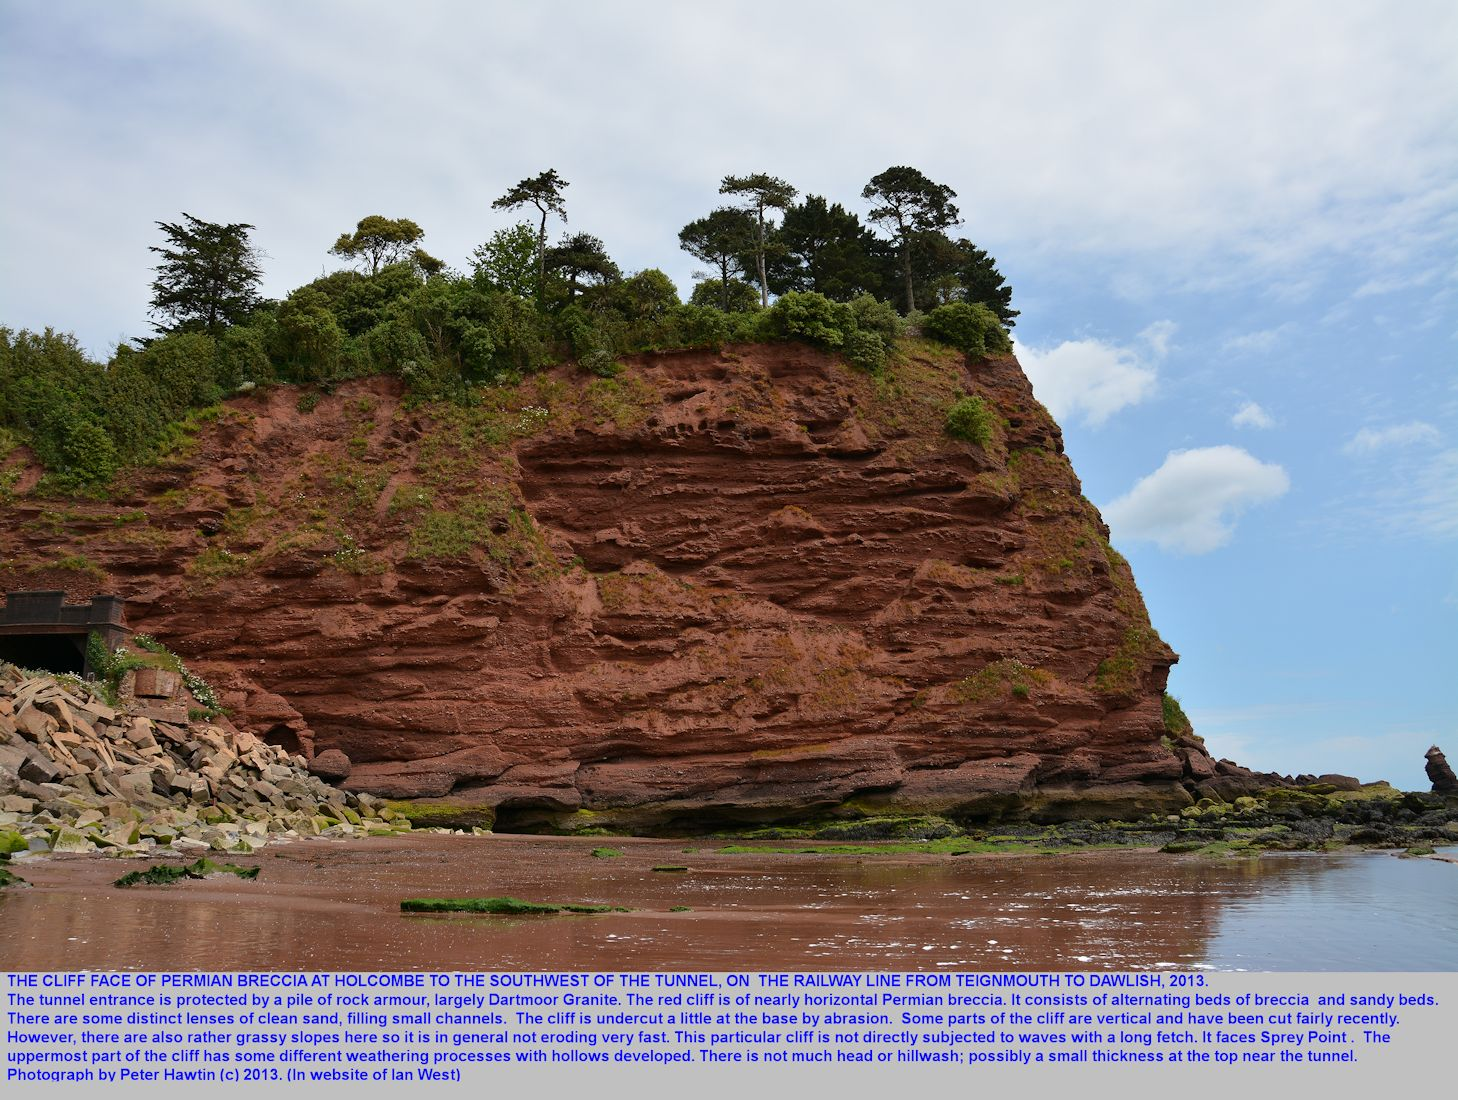 Southwestern Hole Head near Smugglers Lane - a closer view of the cliff of Teignmouth Breccia,   Holcombe, near Dawlish, Devon, Peter Hawtin photograph, 2013